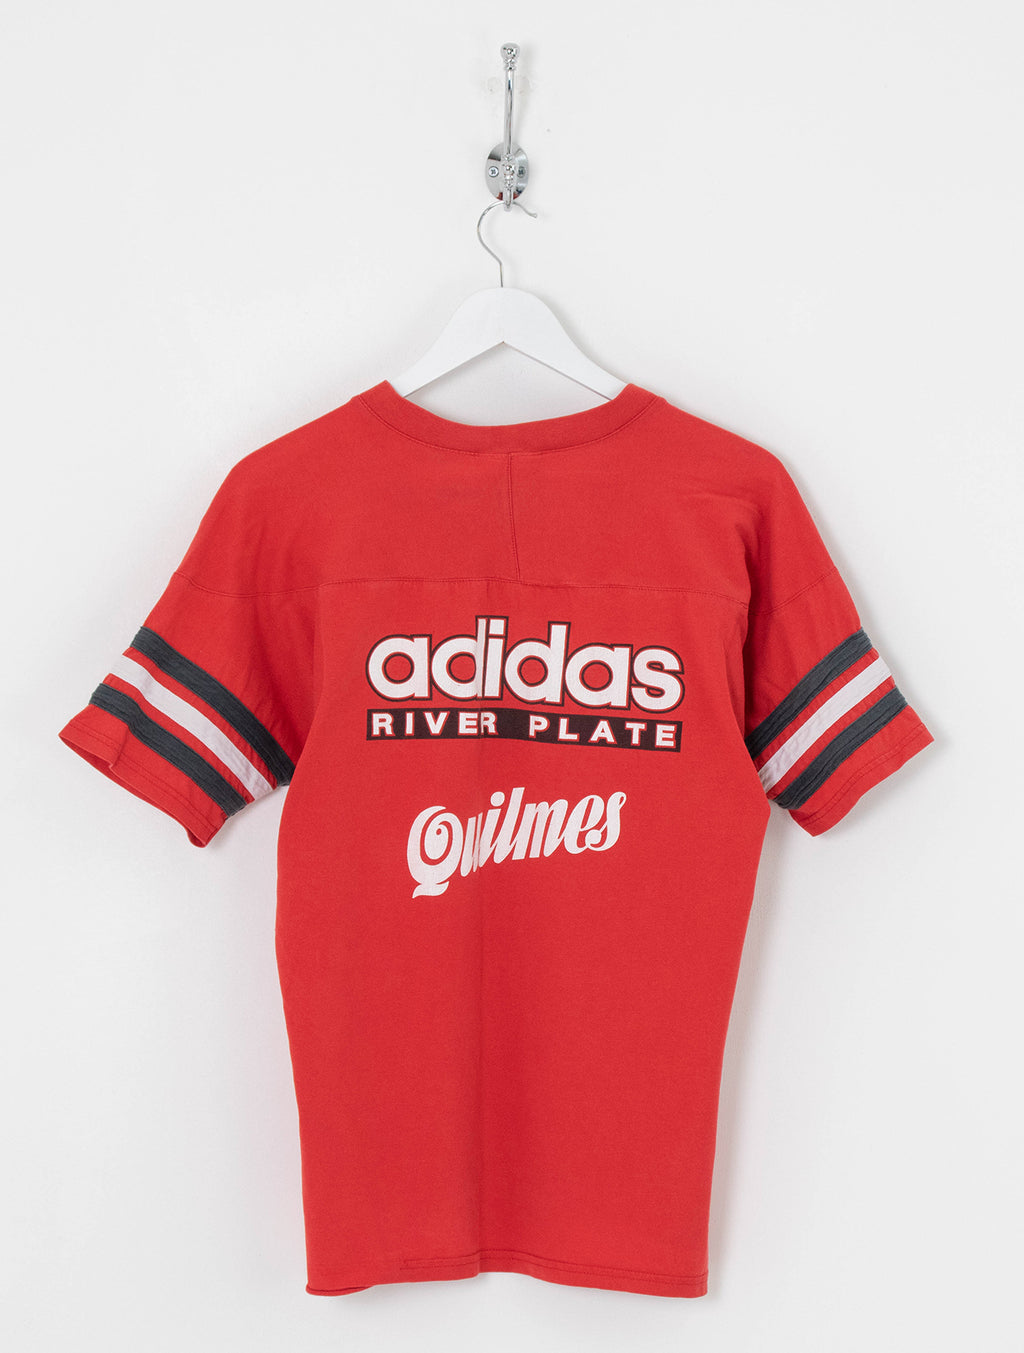 Adidas River Plate T-Shirt (S)